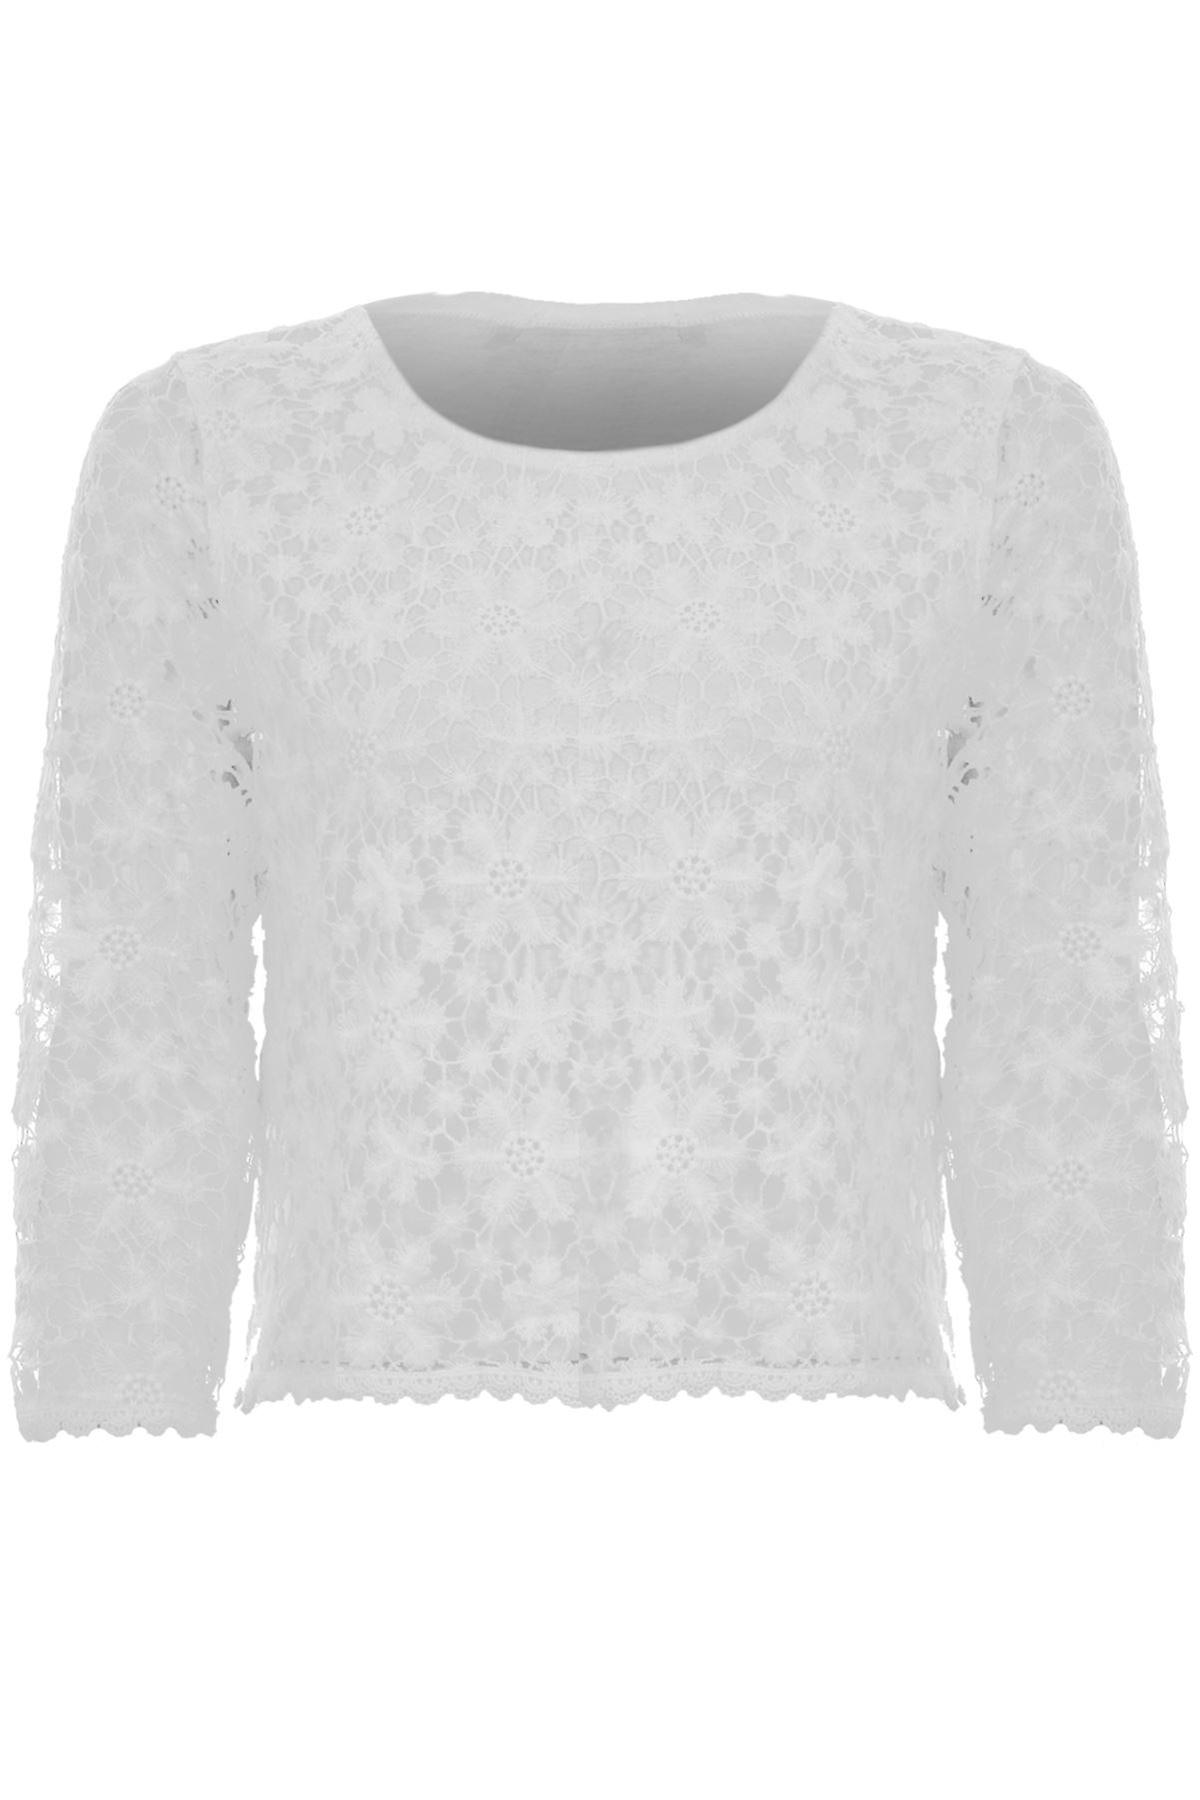 Ladies 3/4 Sleeve Floral Lace Lined Plain Back Women's Summer Crop Top